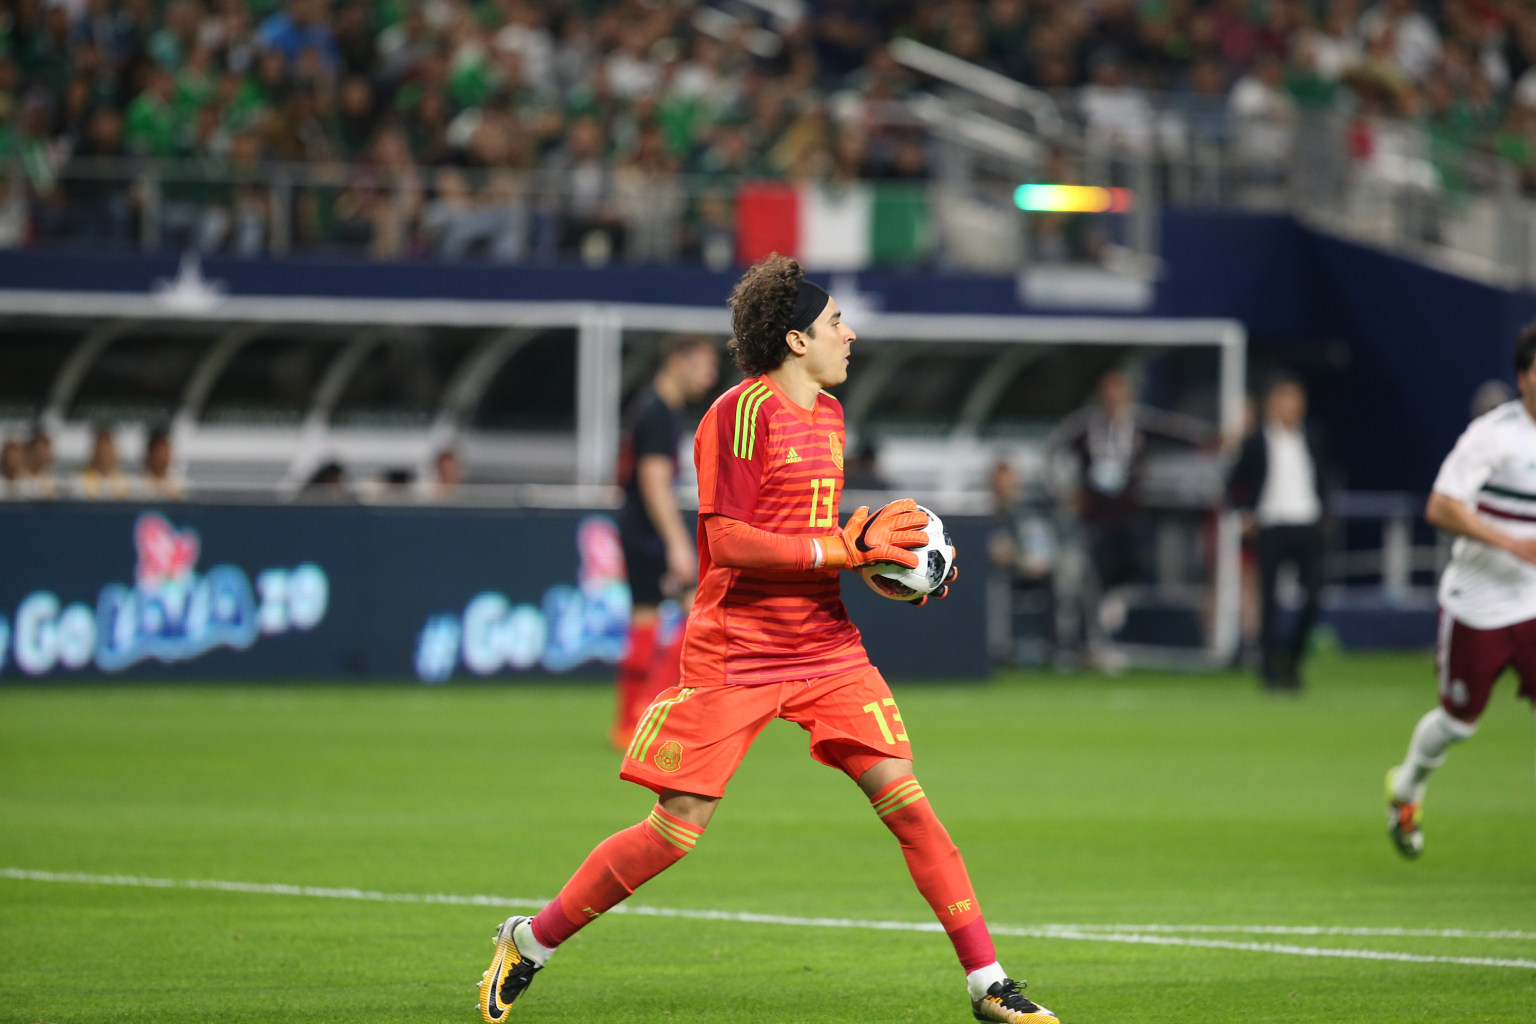 International Soccer Returns to Nissan Stadium with the 2021 MexTour